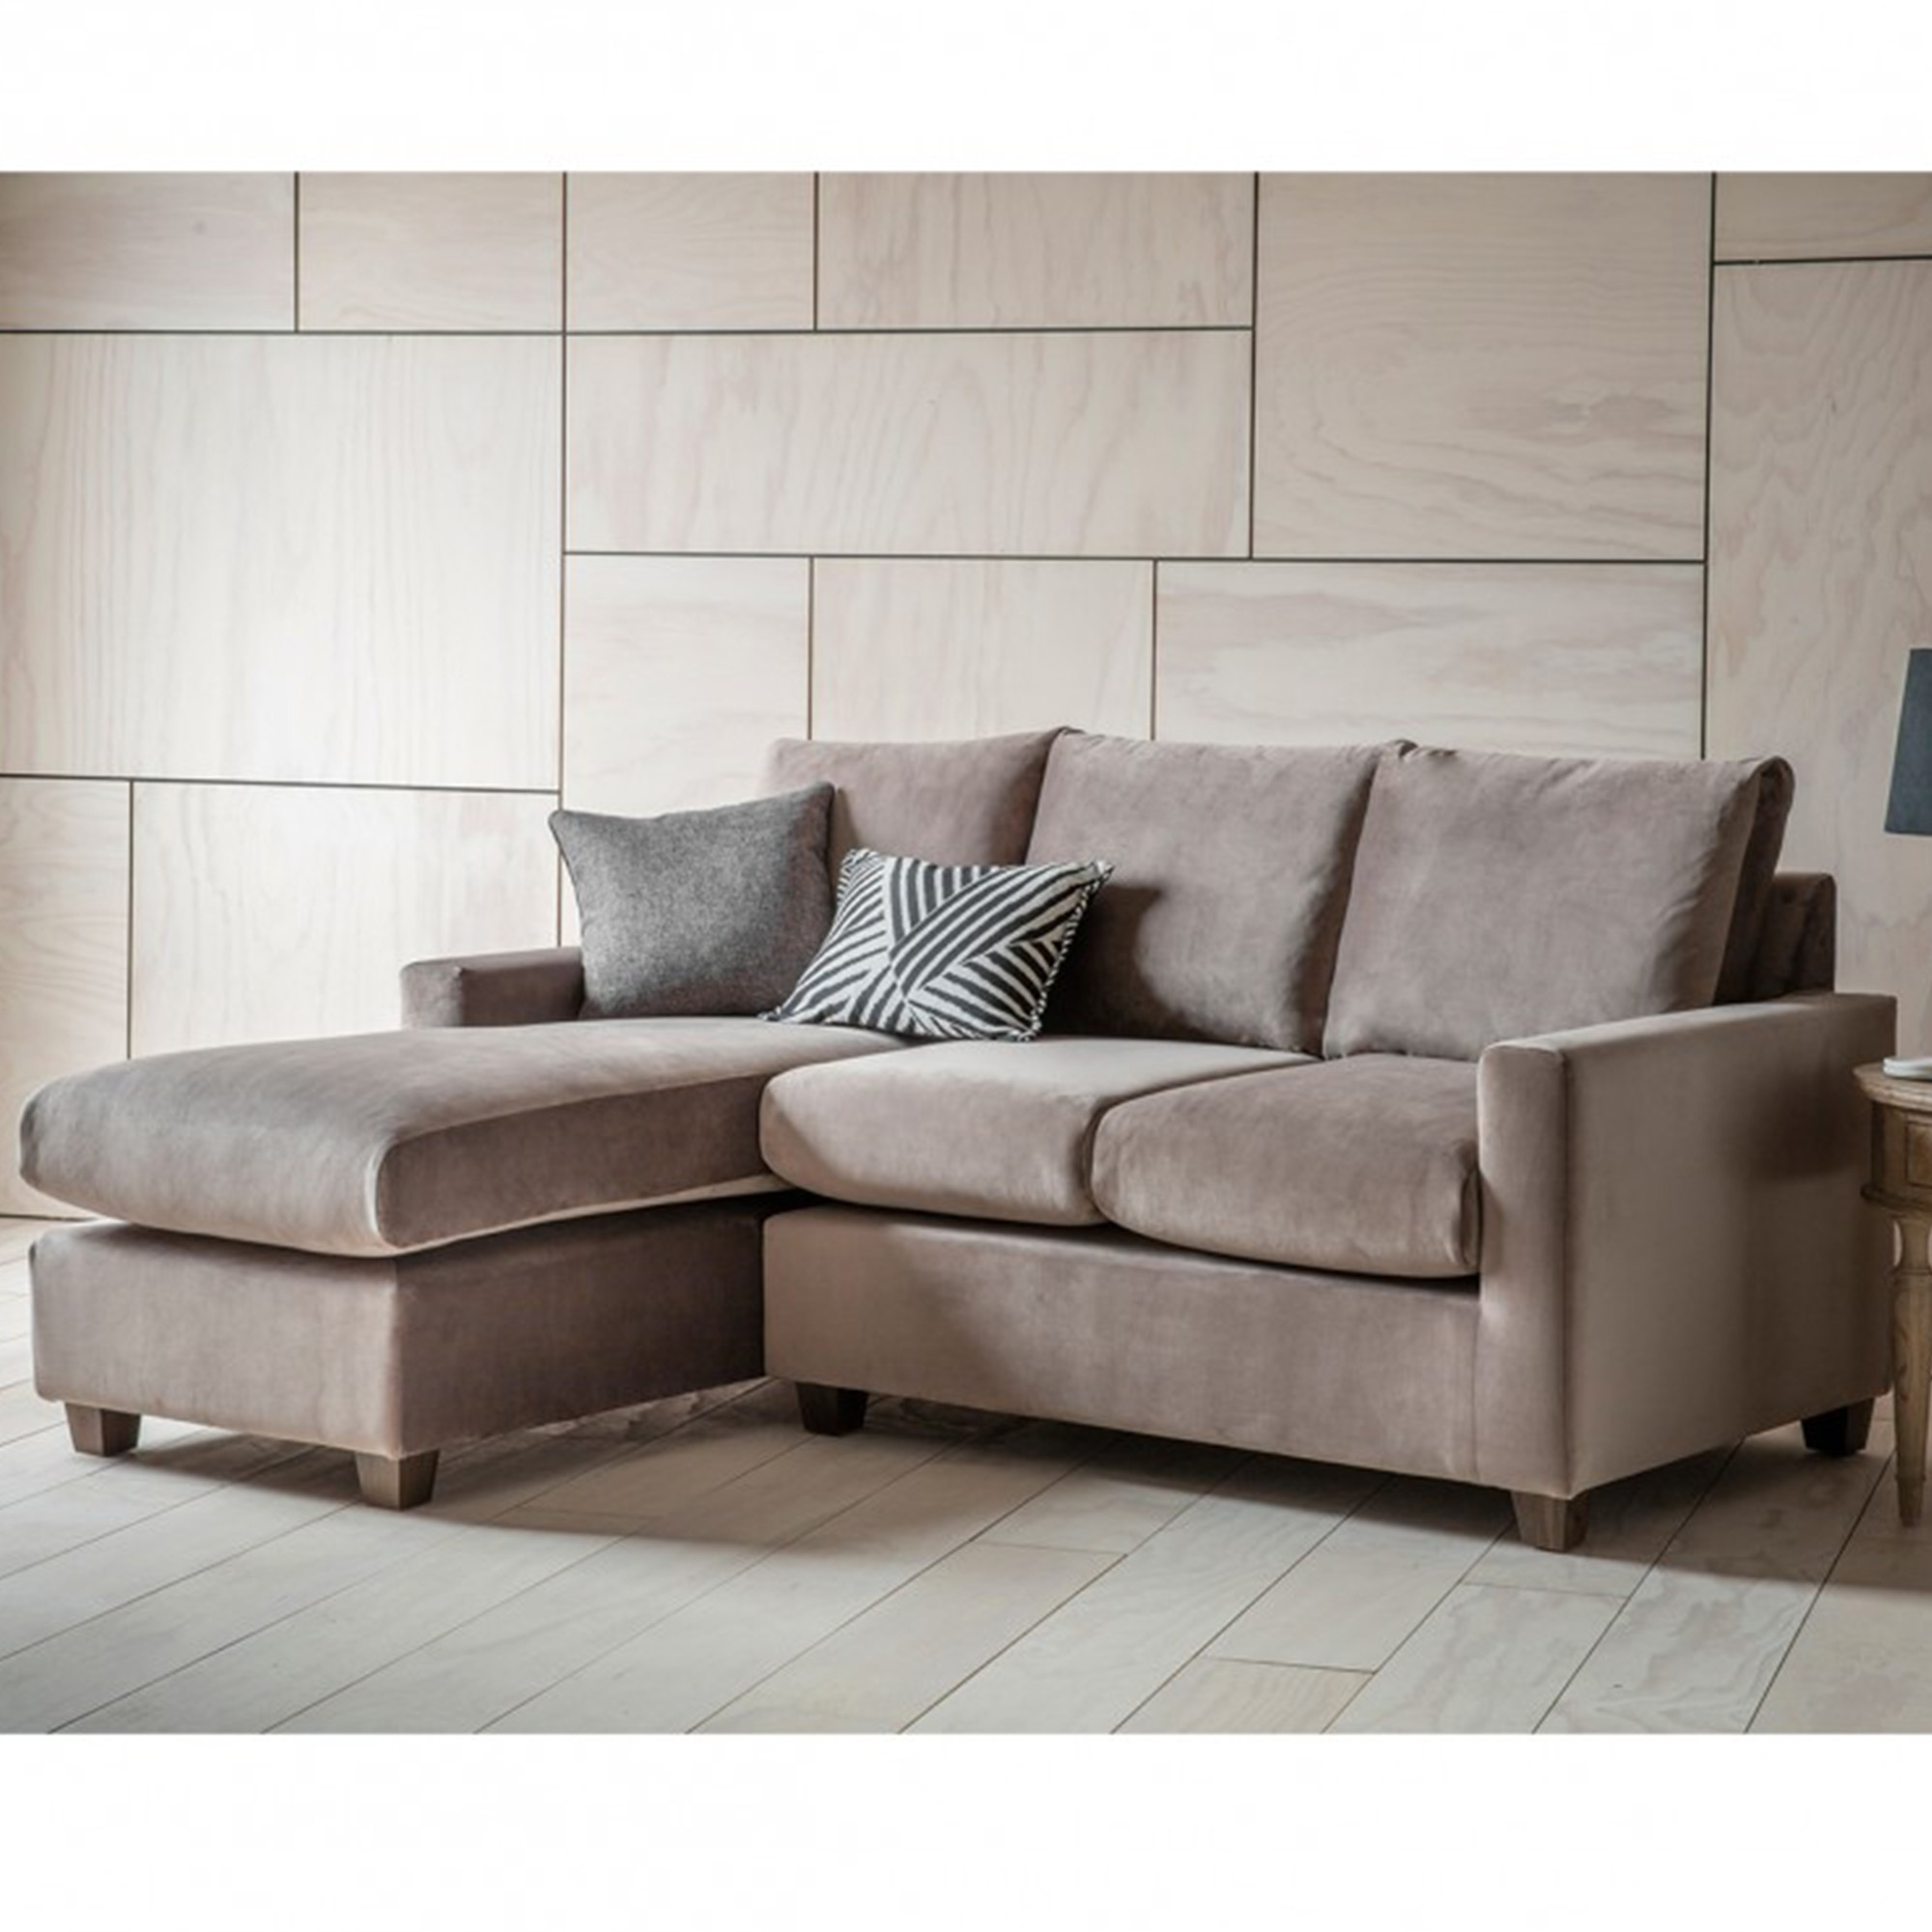 Brussels Taupe Stratford Rh Chaise Sofa Seating Online From Throughout Stratford Sofas (Image 2 of 15)